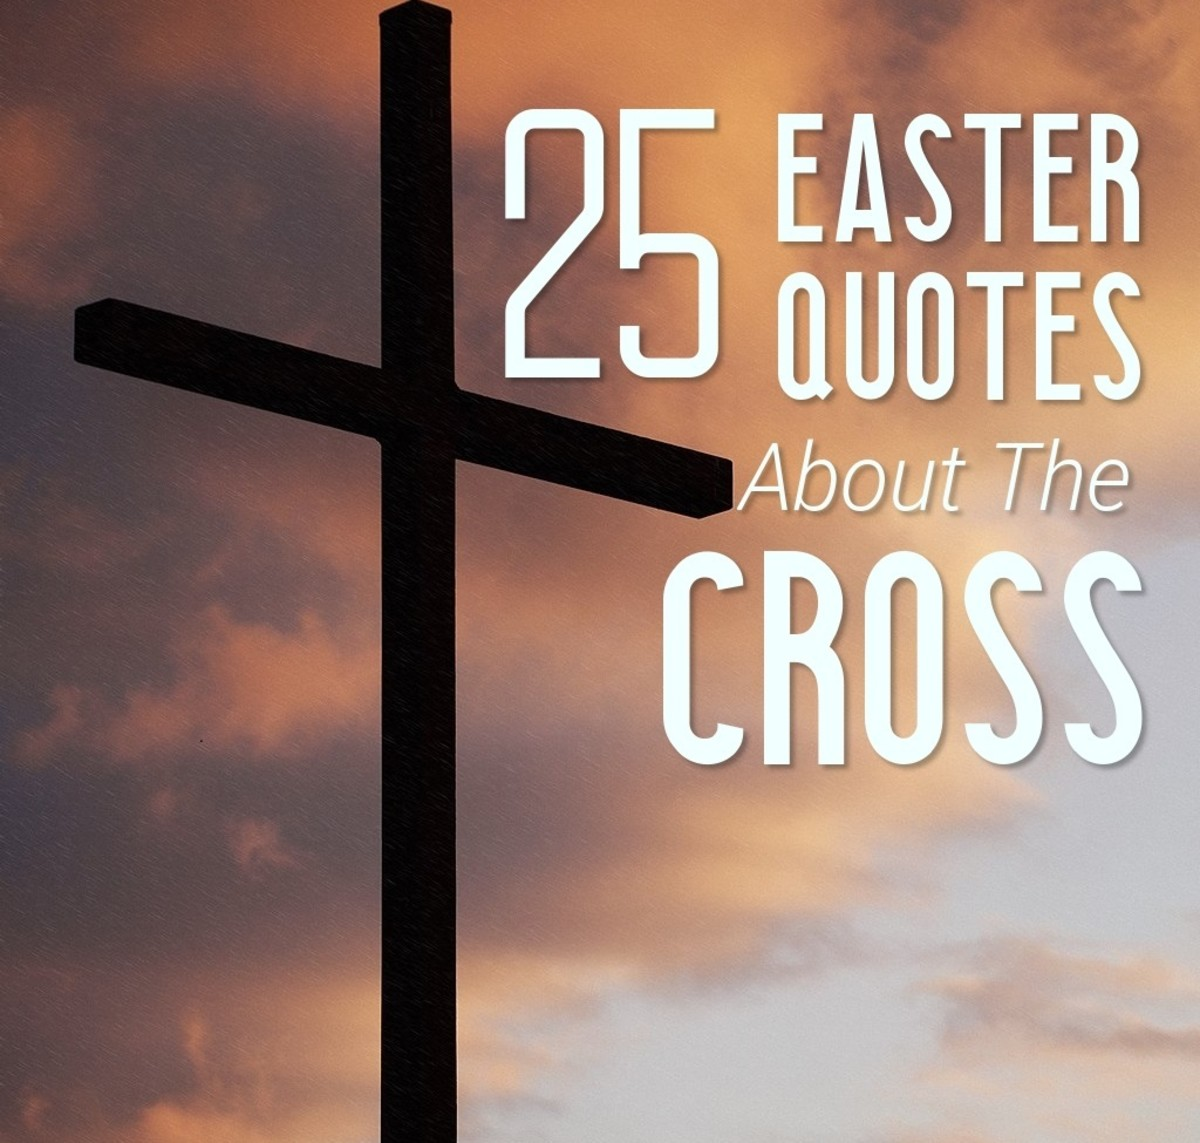 The cross is the universal symbol of Christianity.